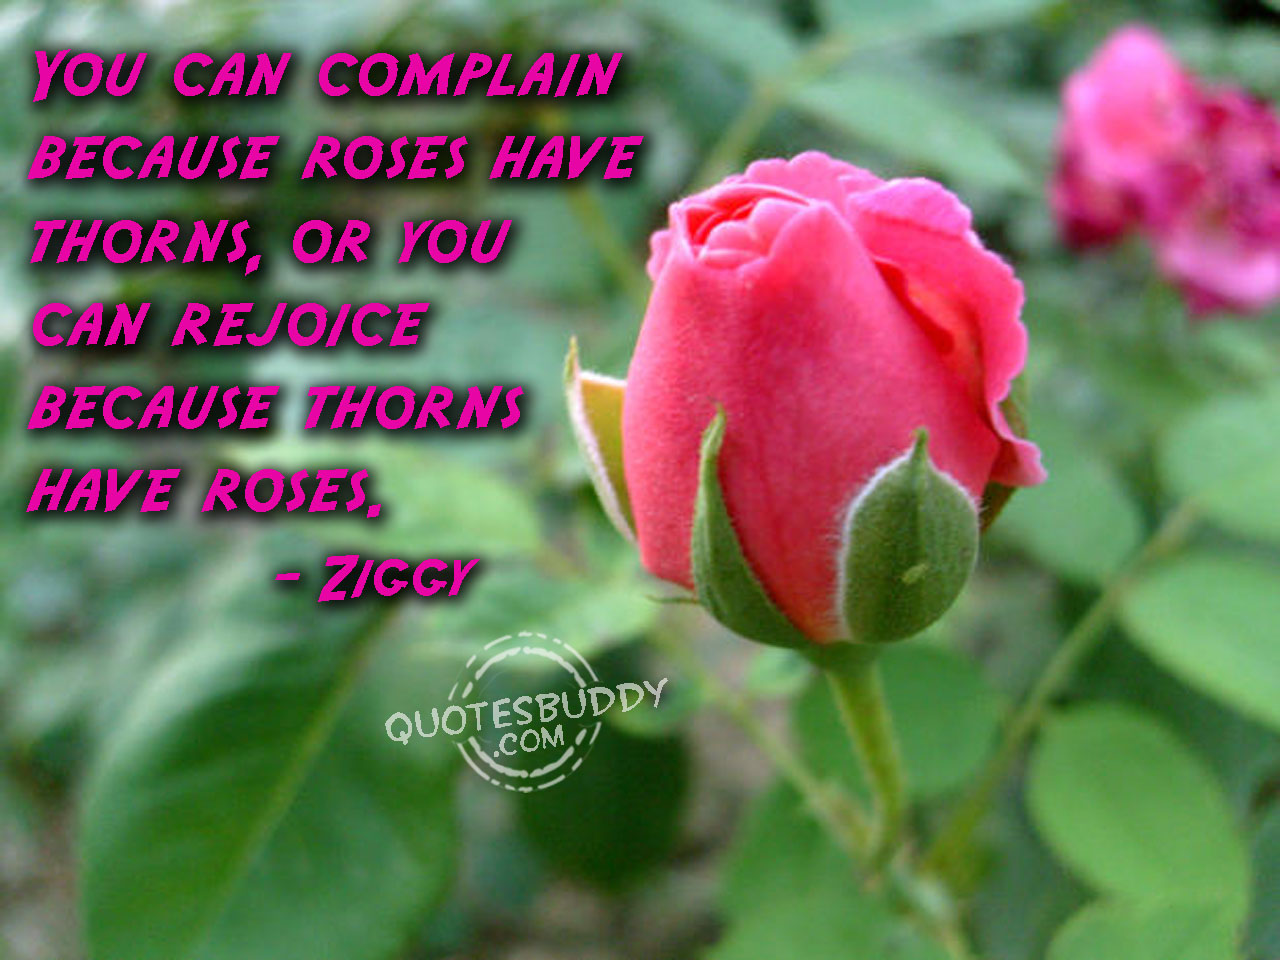 Rose pictures with quotes 24 rose pictures with quotes dhlflorist Images